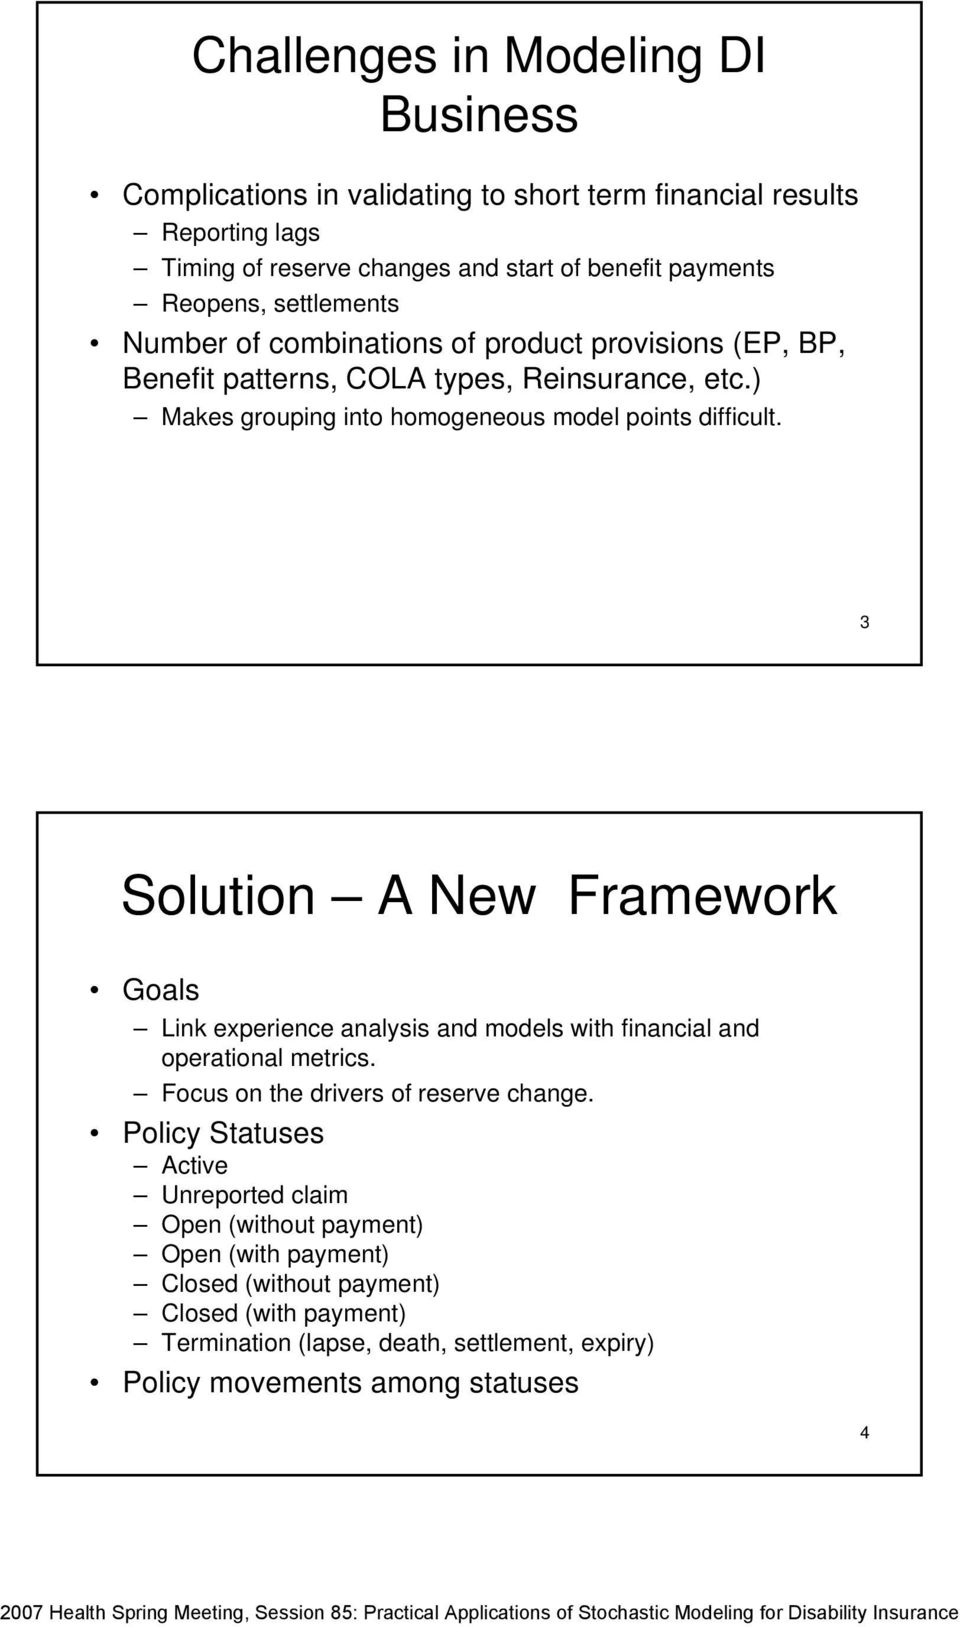 Solution A New Framework Goals Link experience analysis and models with financial and operational metrics. Focus on the drivers of reserve change.